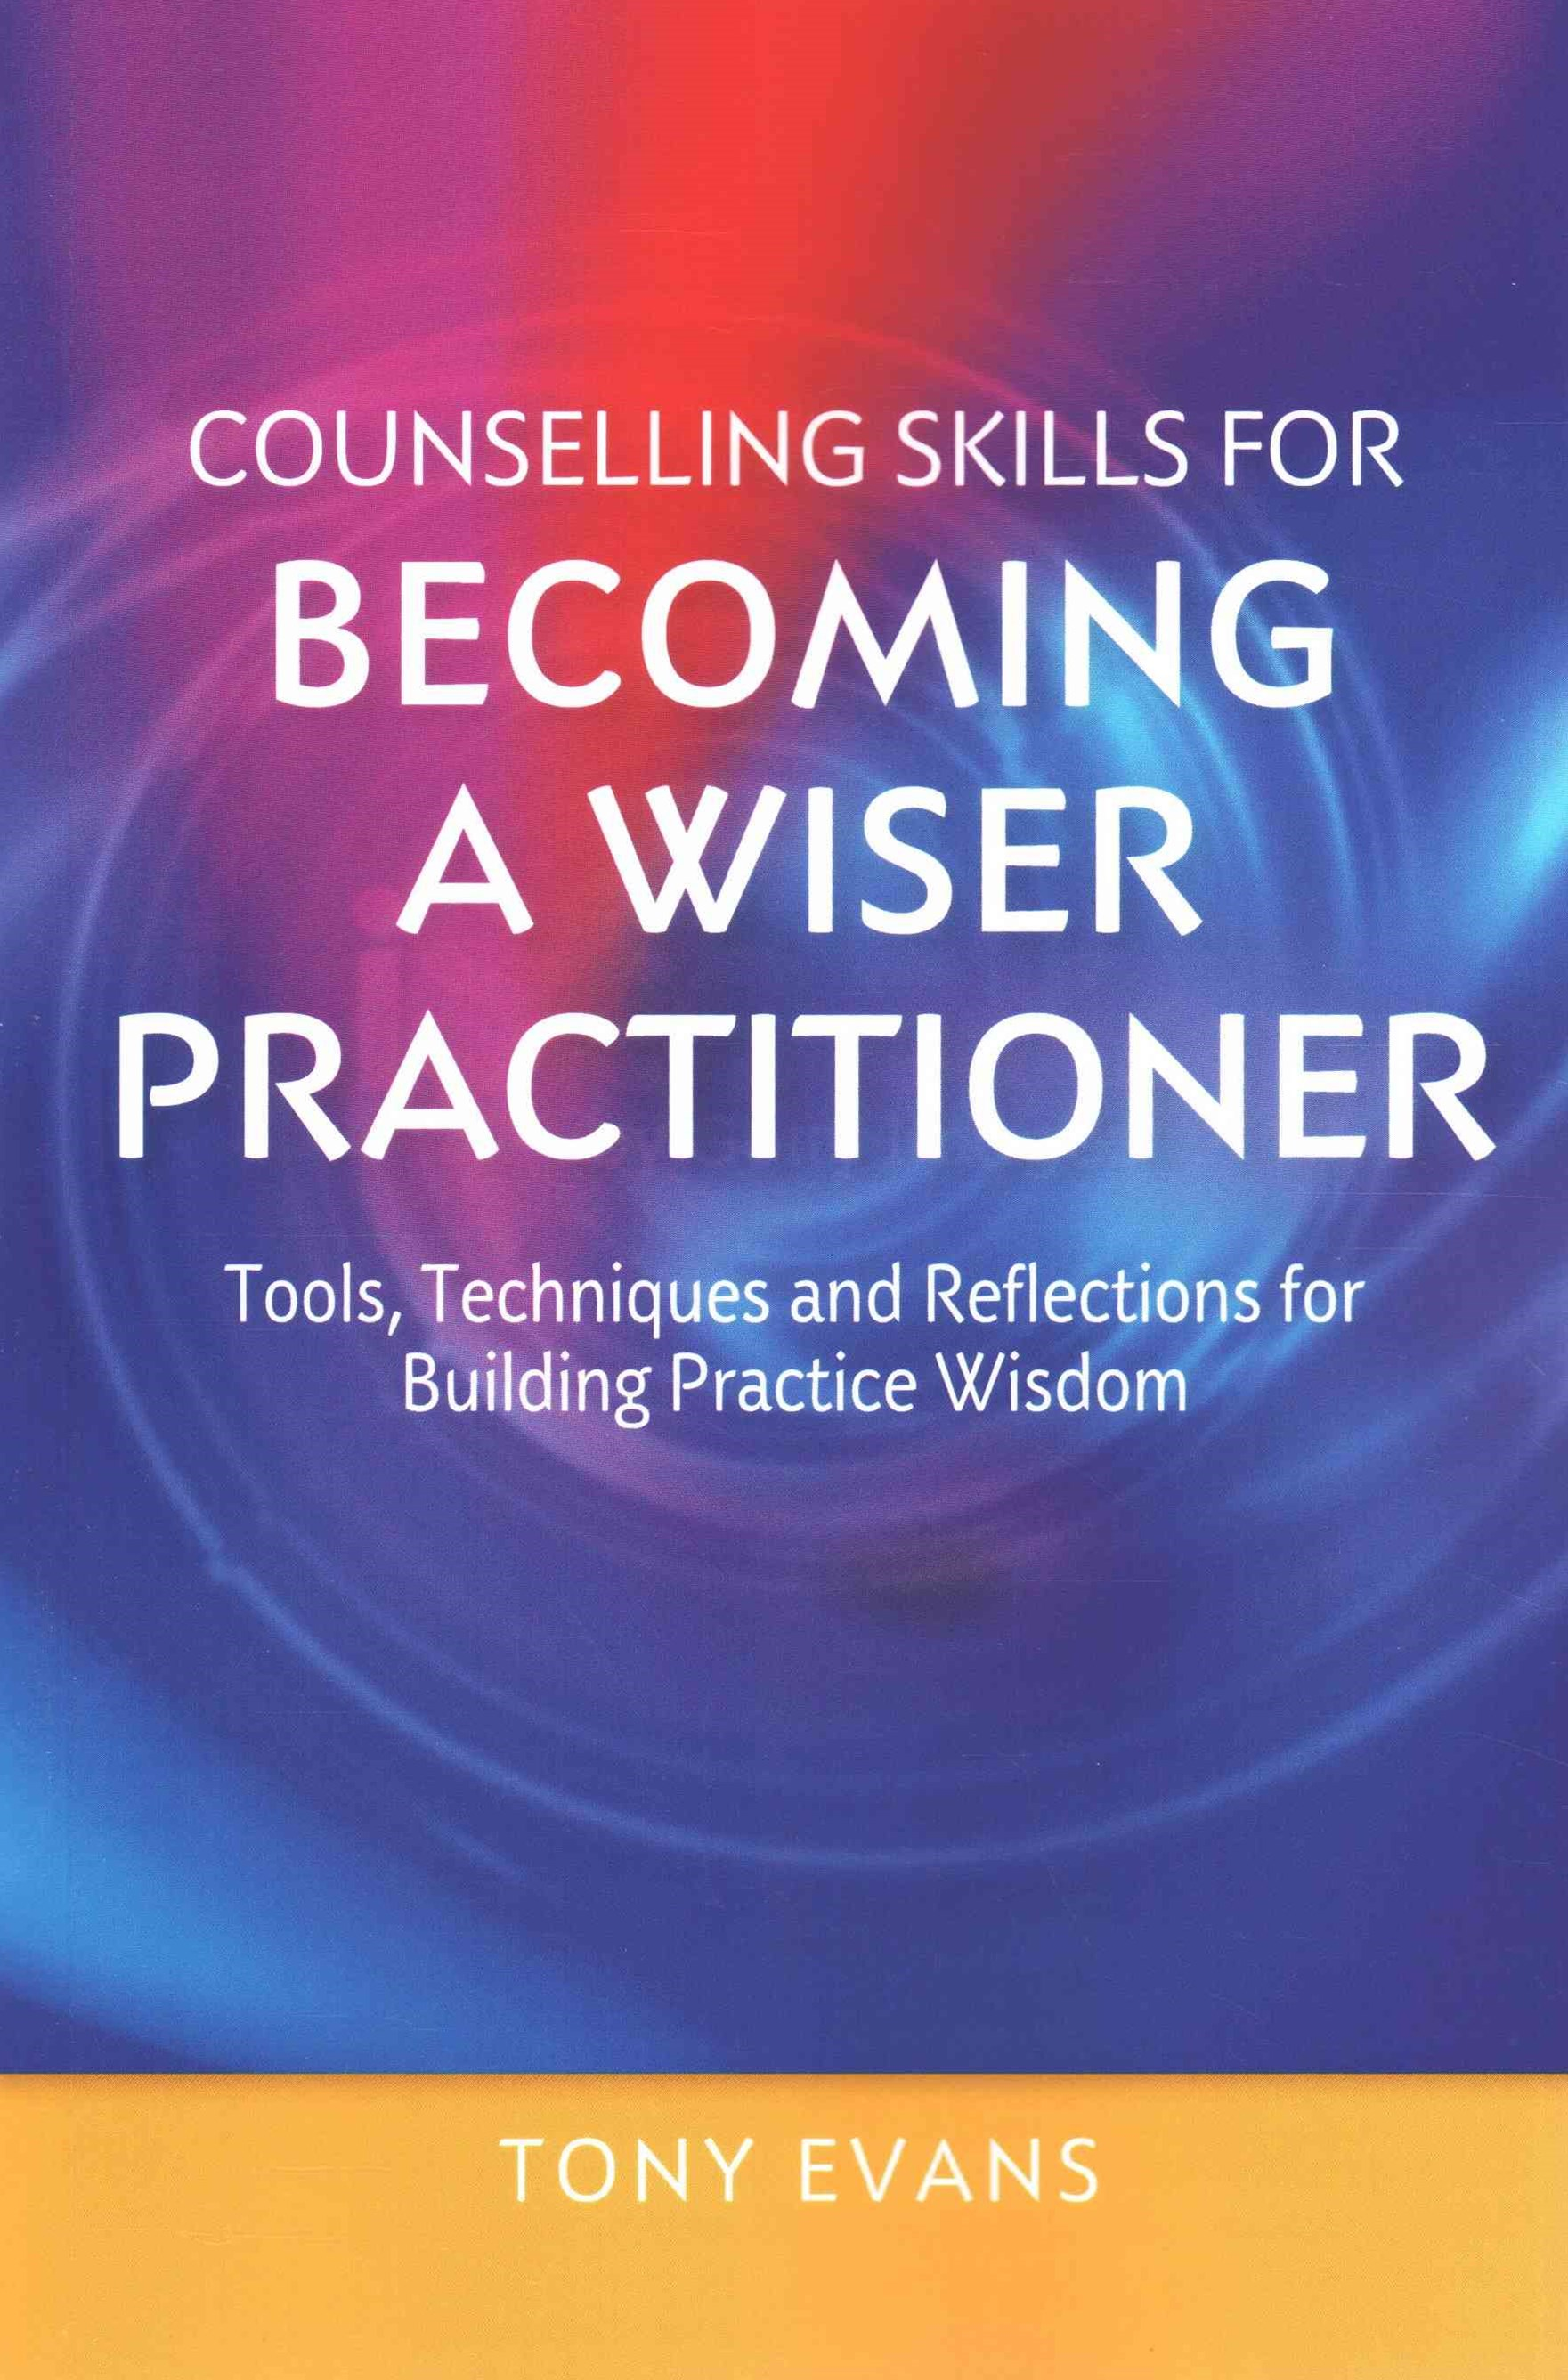 Counselling Skills for Becoming a Wiser Practitioner